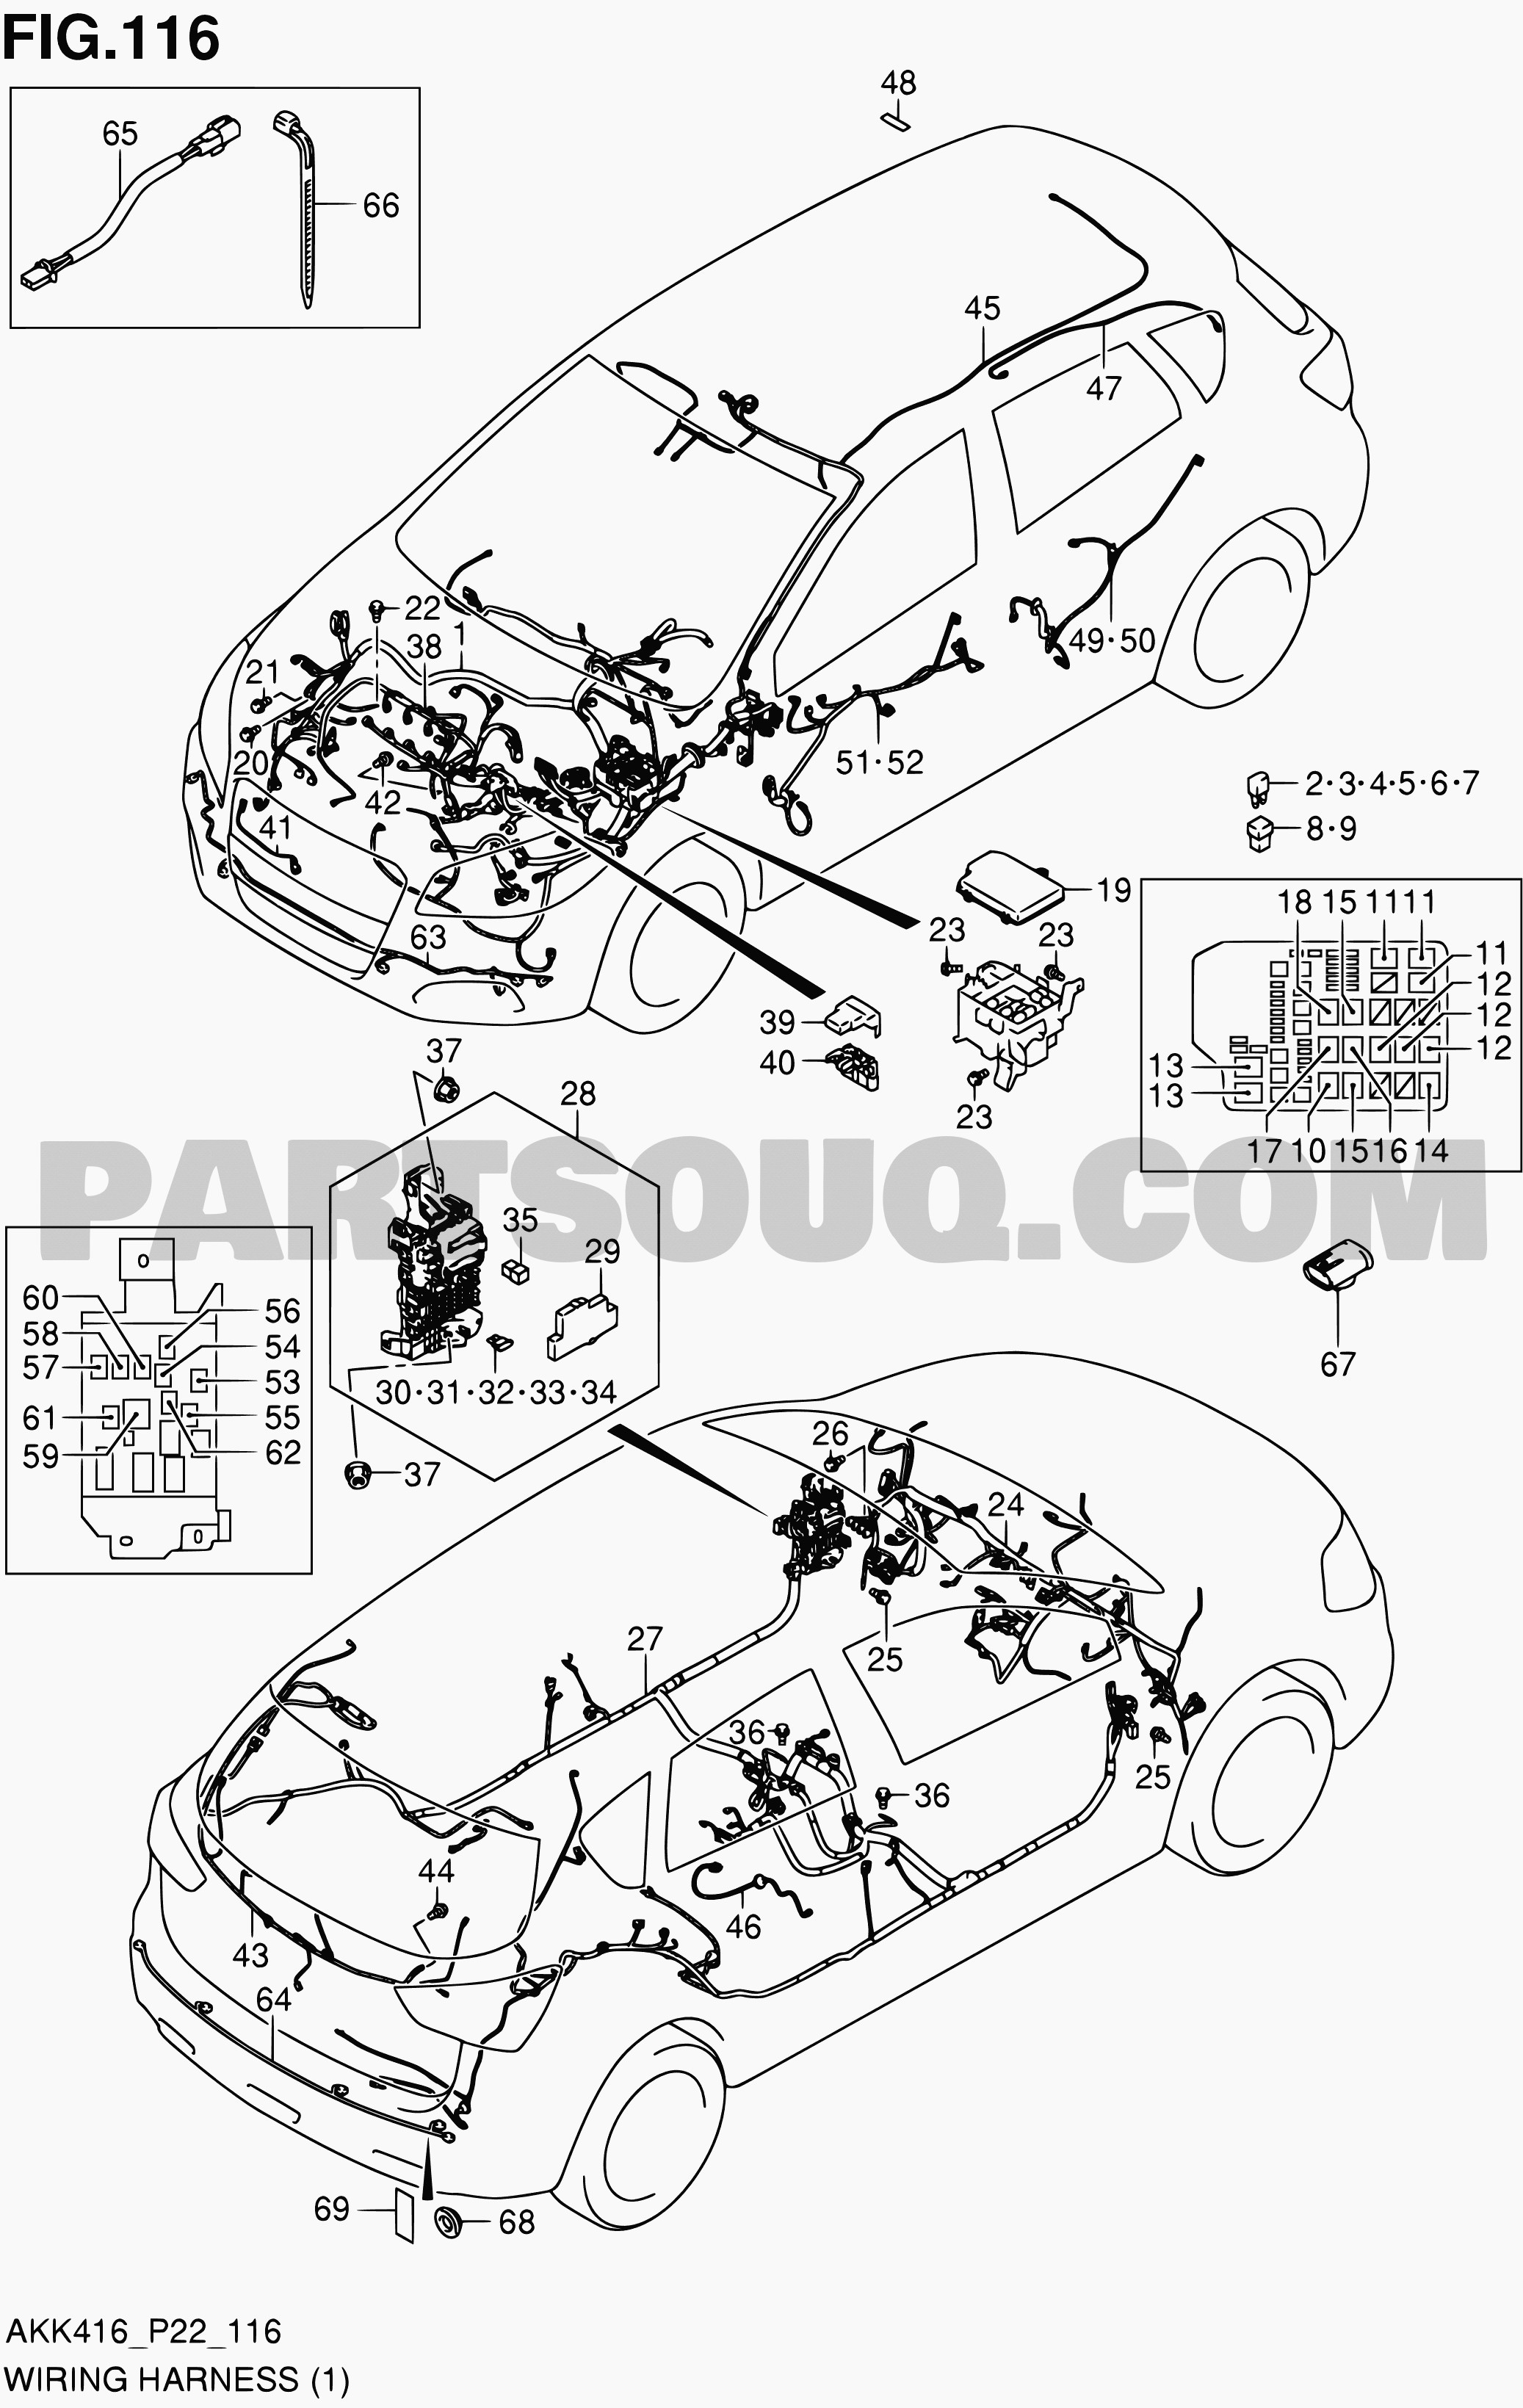 2006 scion tc engine diagram